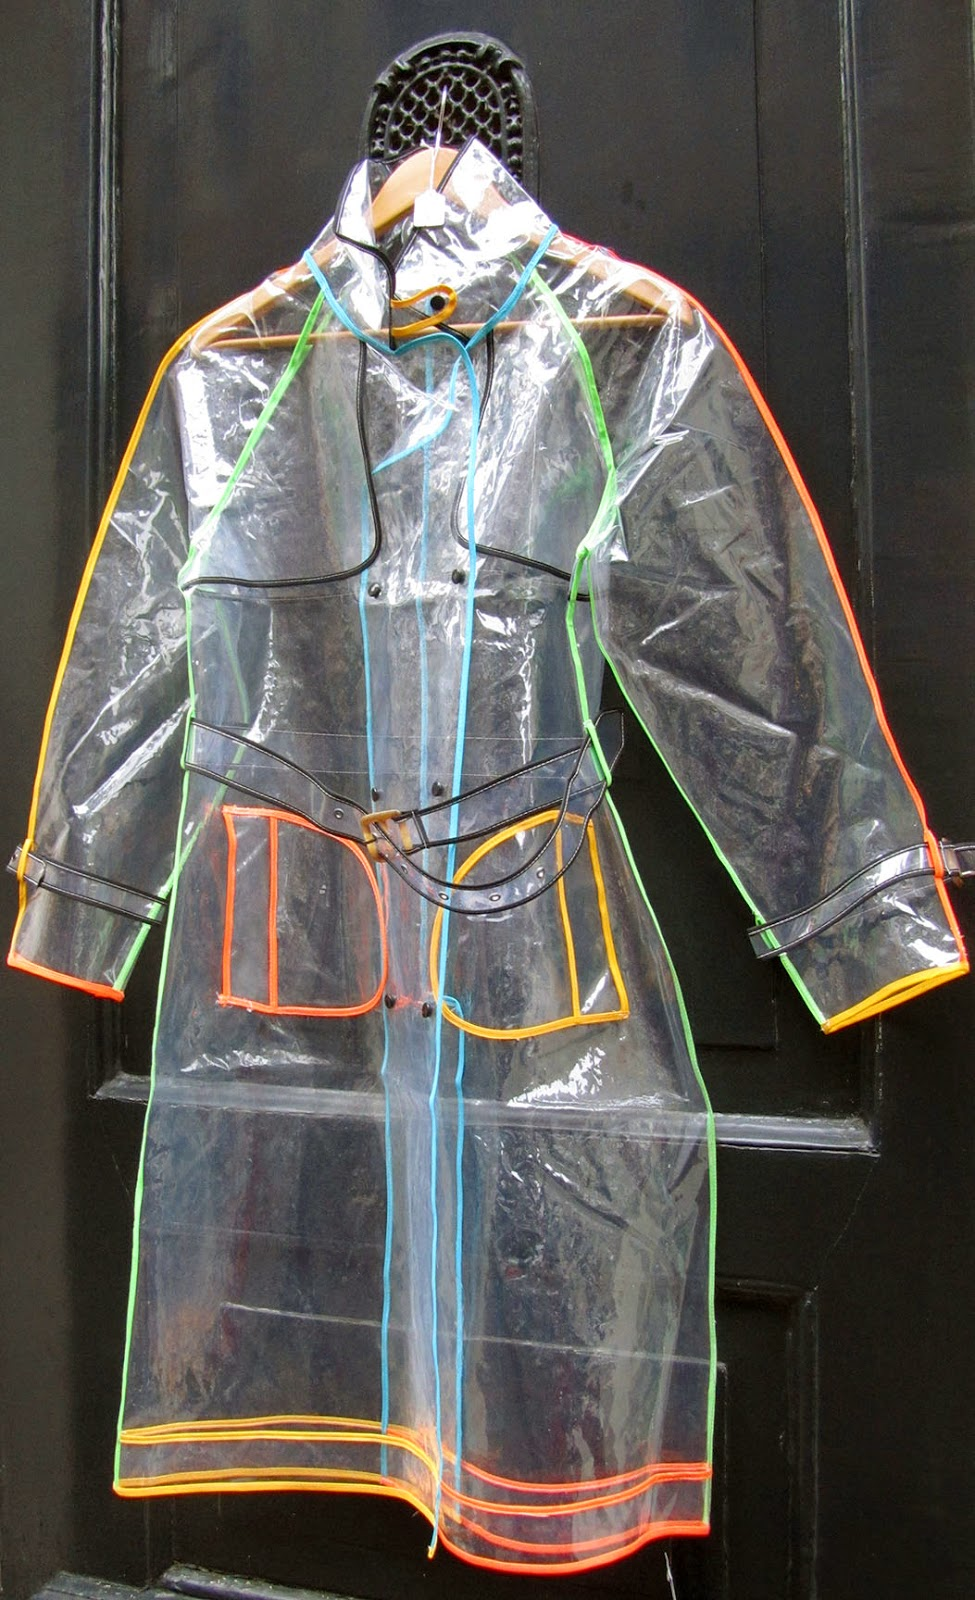 see-through raincoat